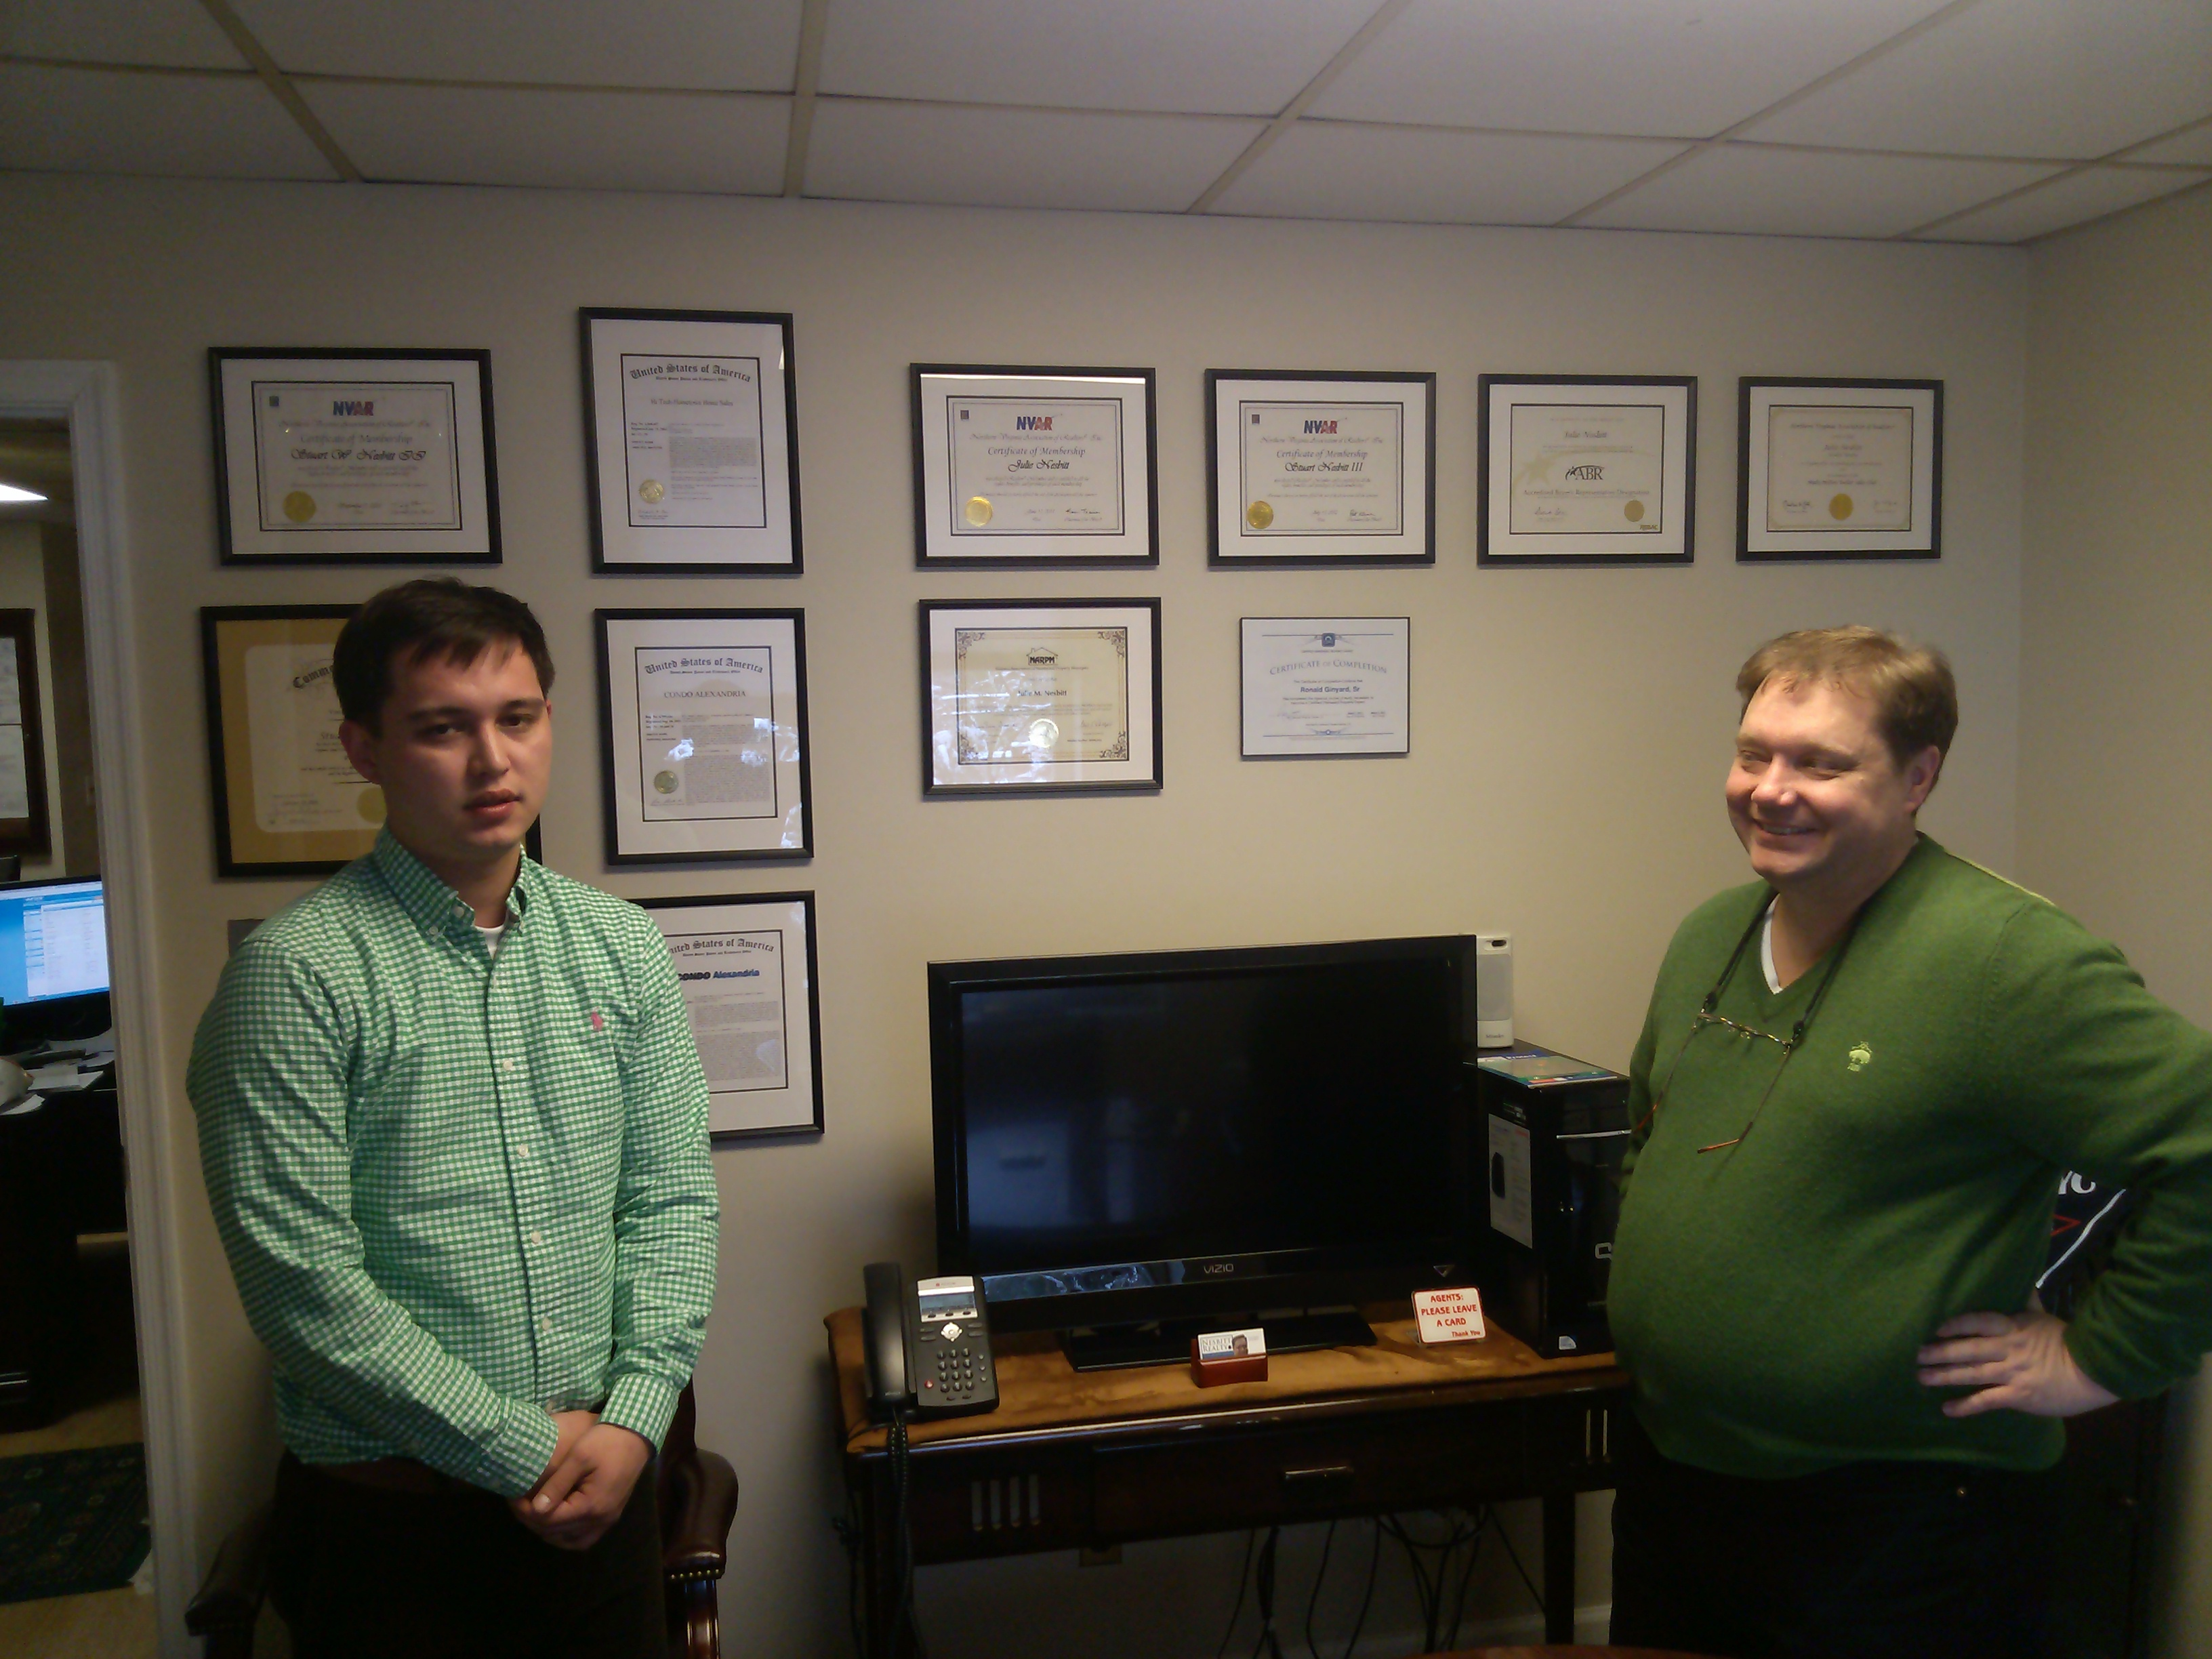 Father and son celebrate Saint Patrick's Day by wearing green at the office